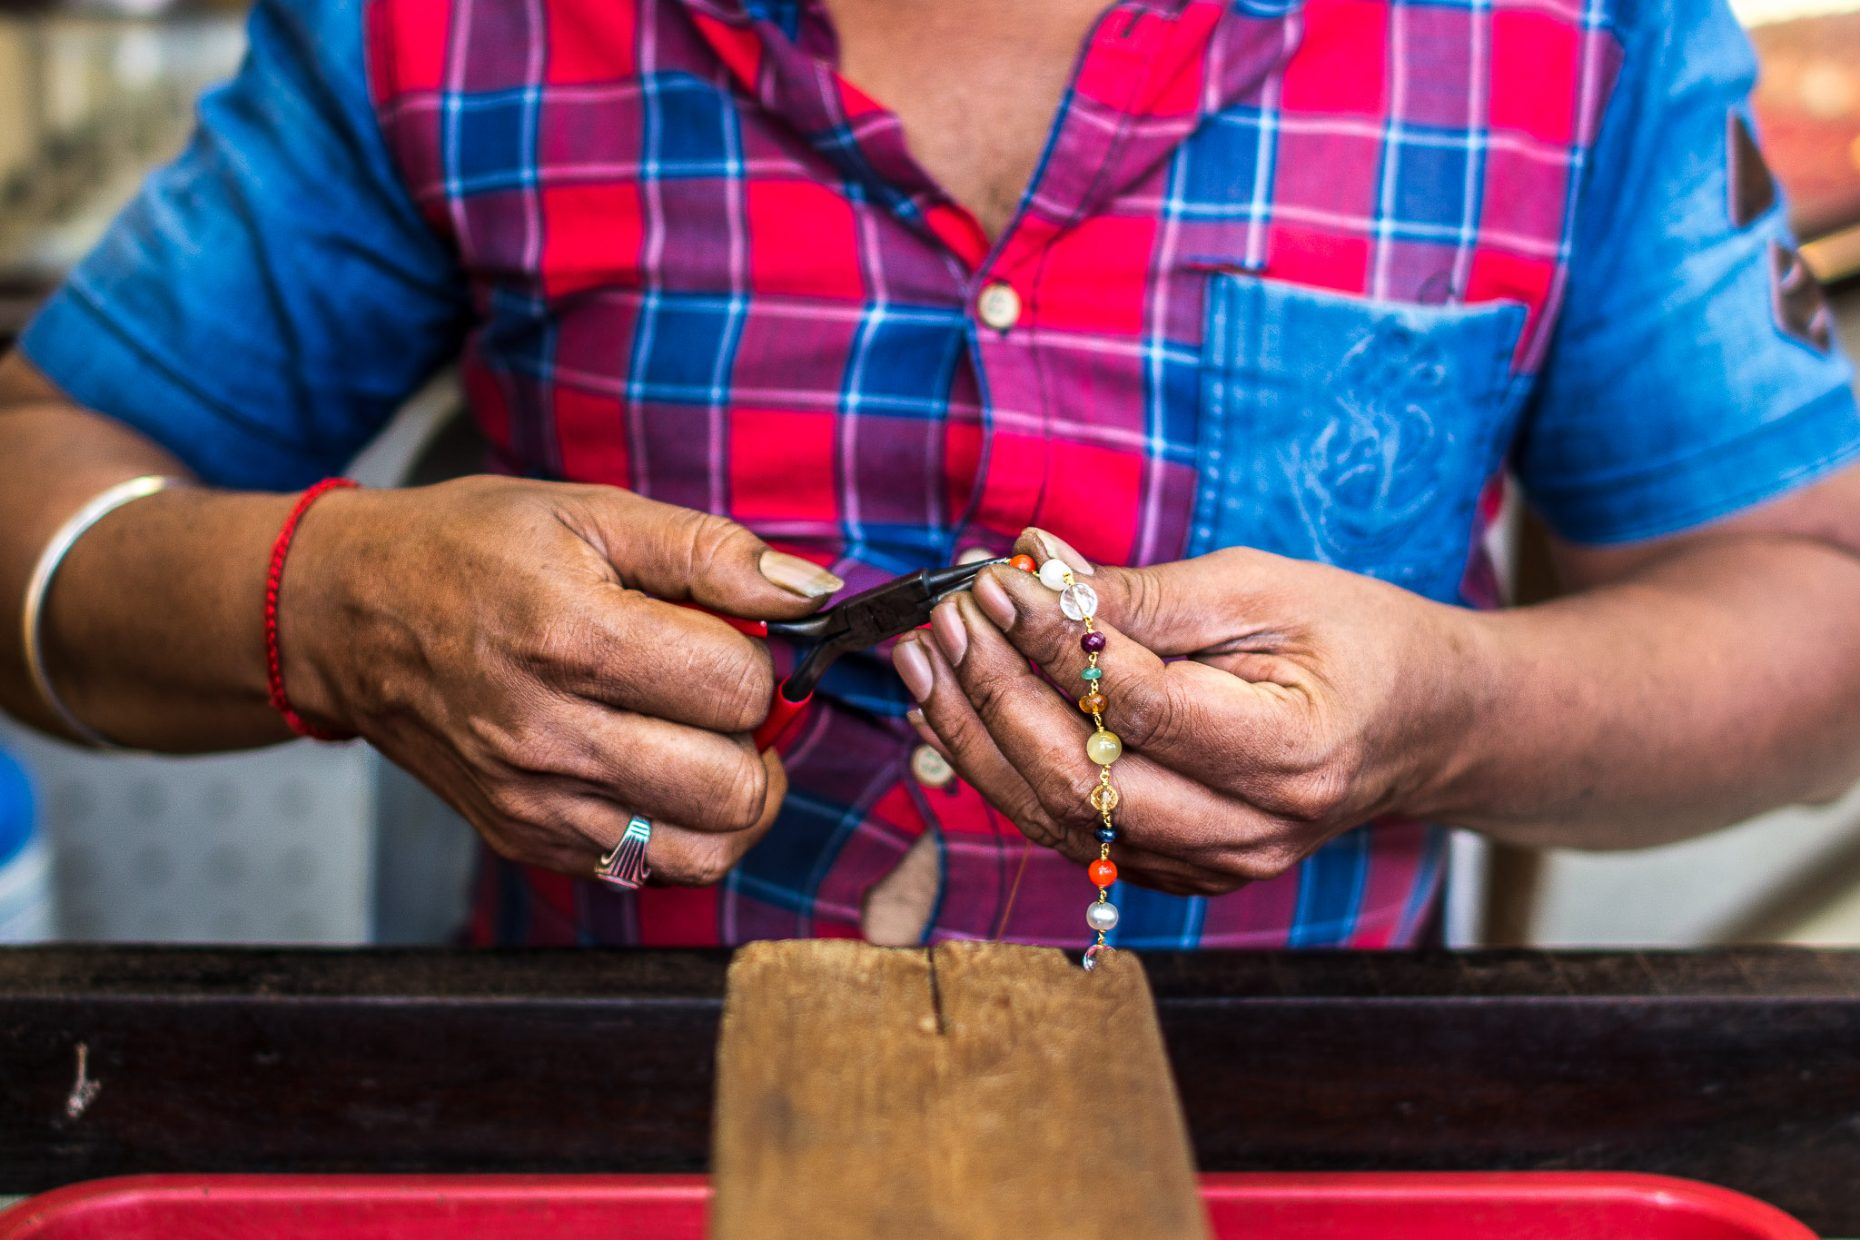 Hands, Documentary photography. People